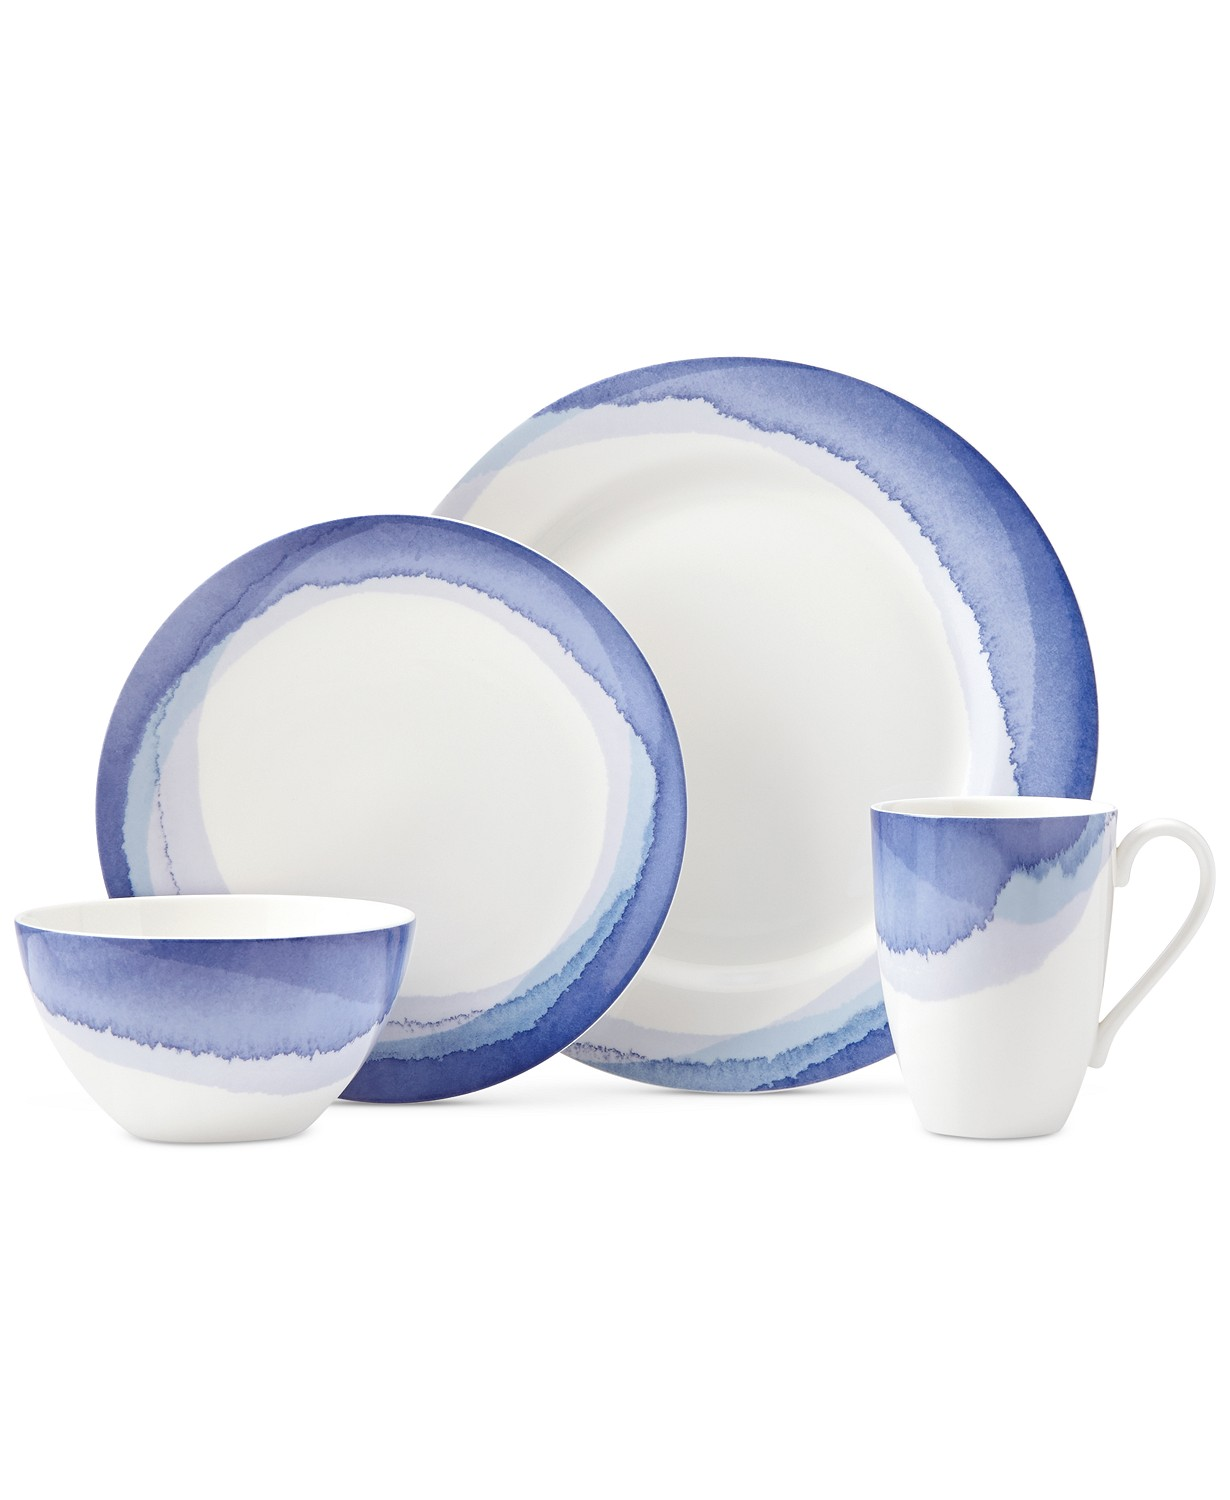 Lenox Indigo Watercolor Stripe Porcelain 4-Pc. Place Setting, Created for Macy's